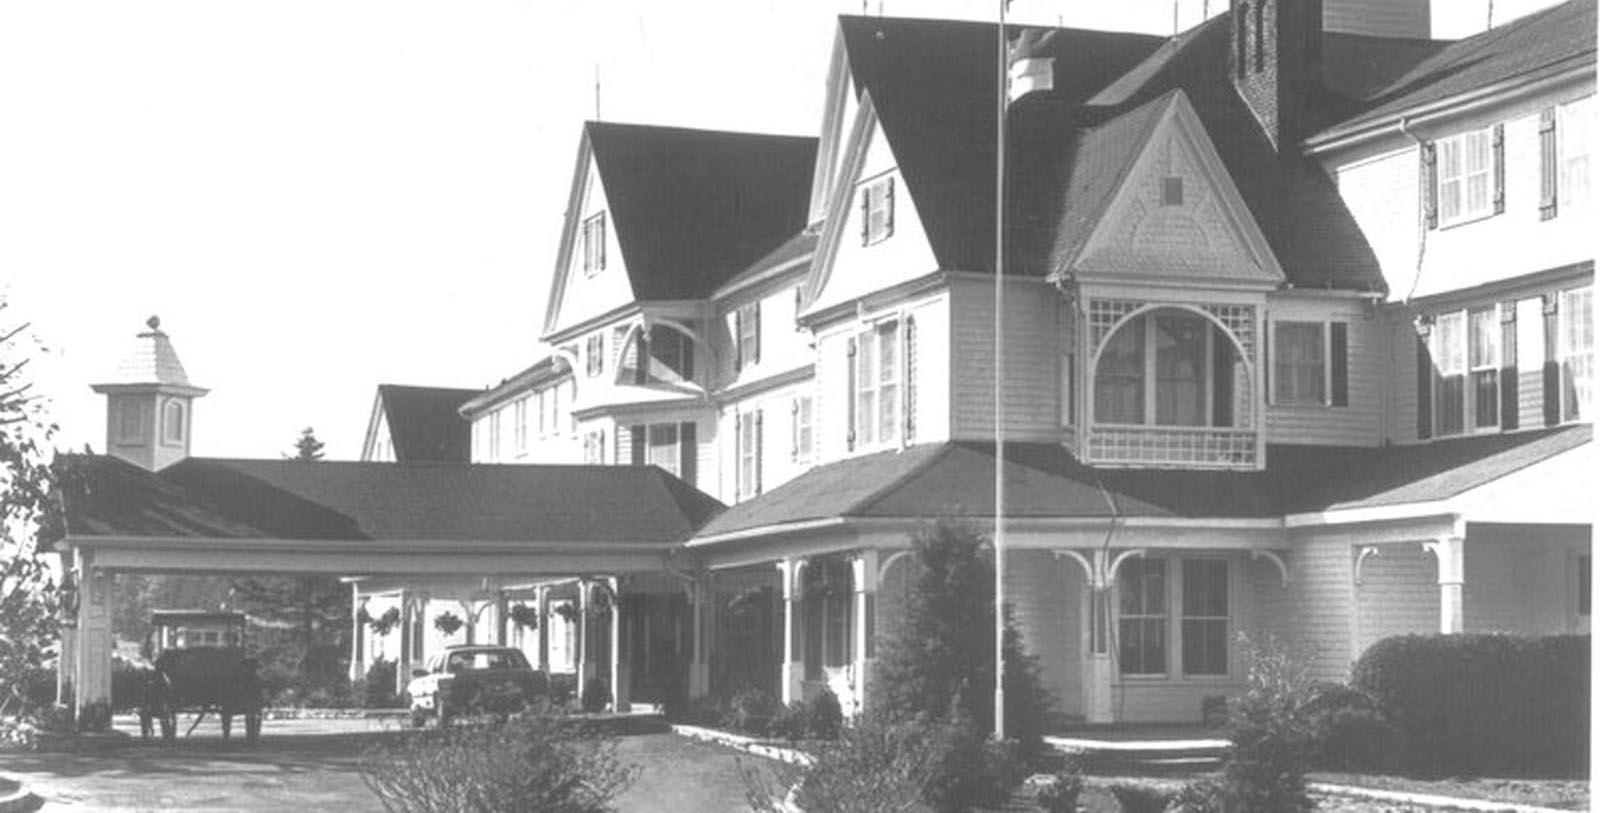 Historic image of Green Park Inn, 1891, Member of Historic Hotels of America, in Blowing Rock, North Carolina, Discover